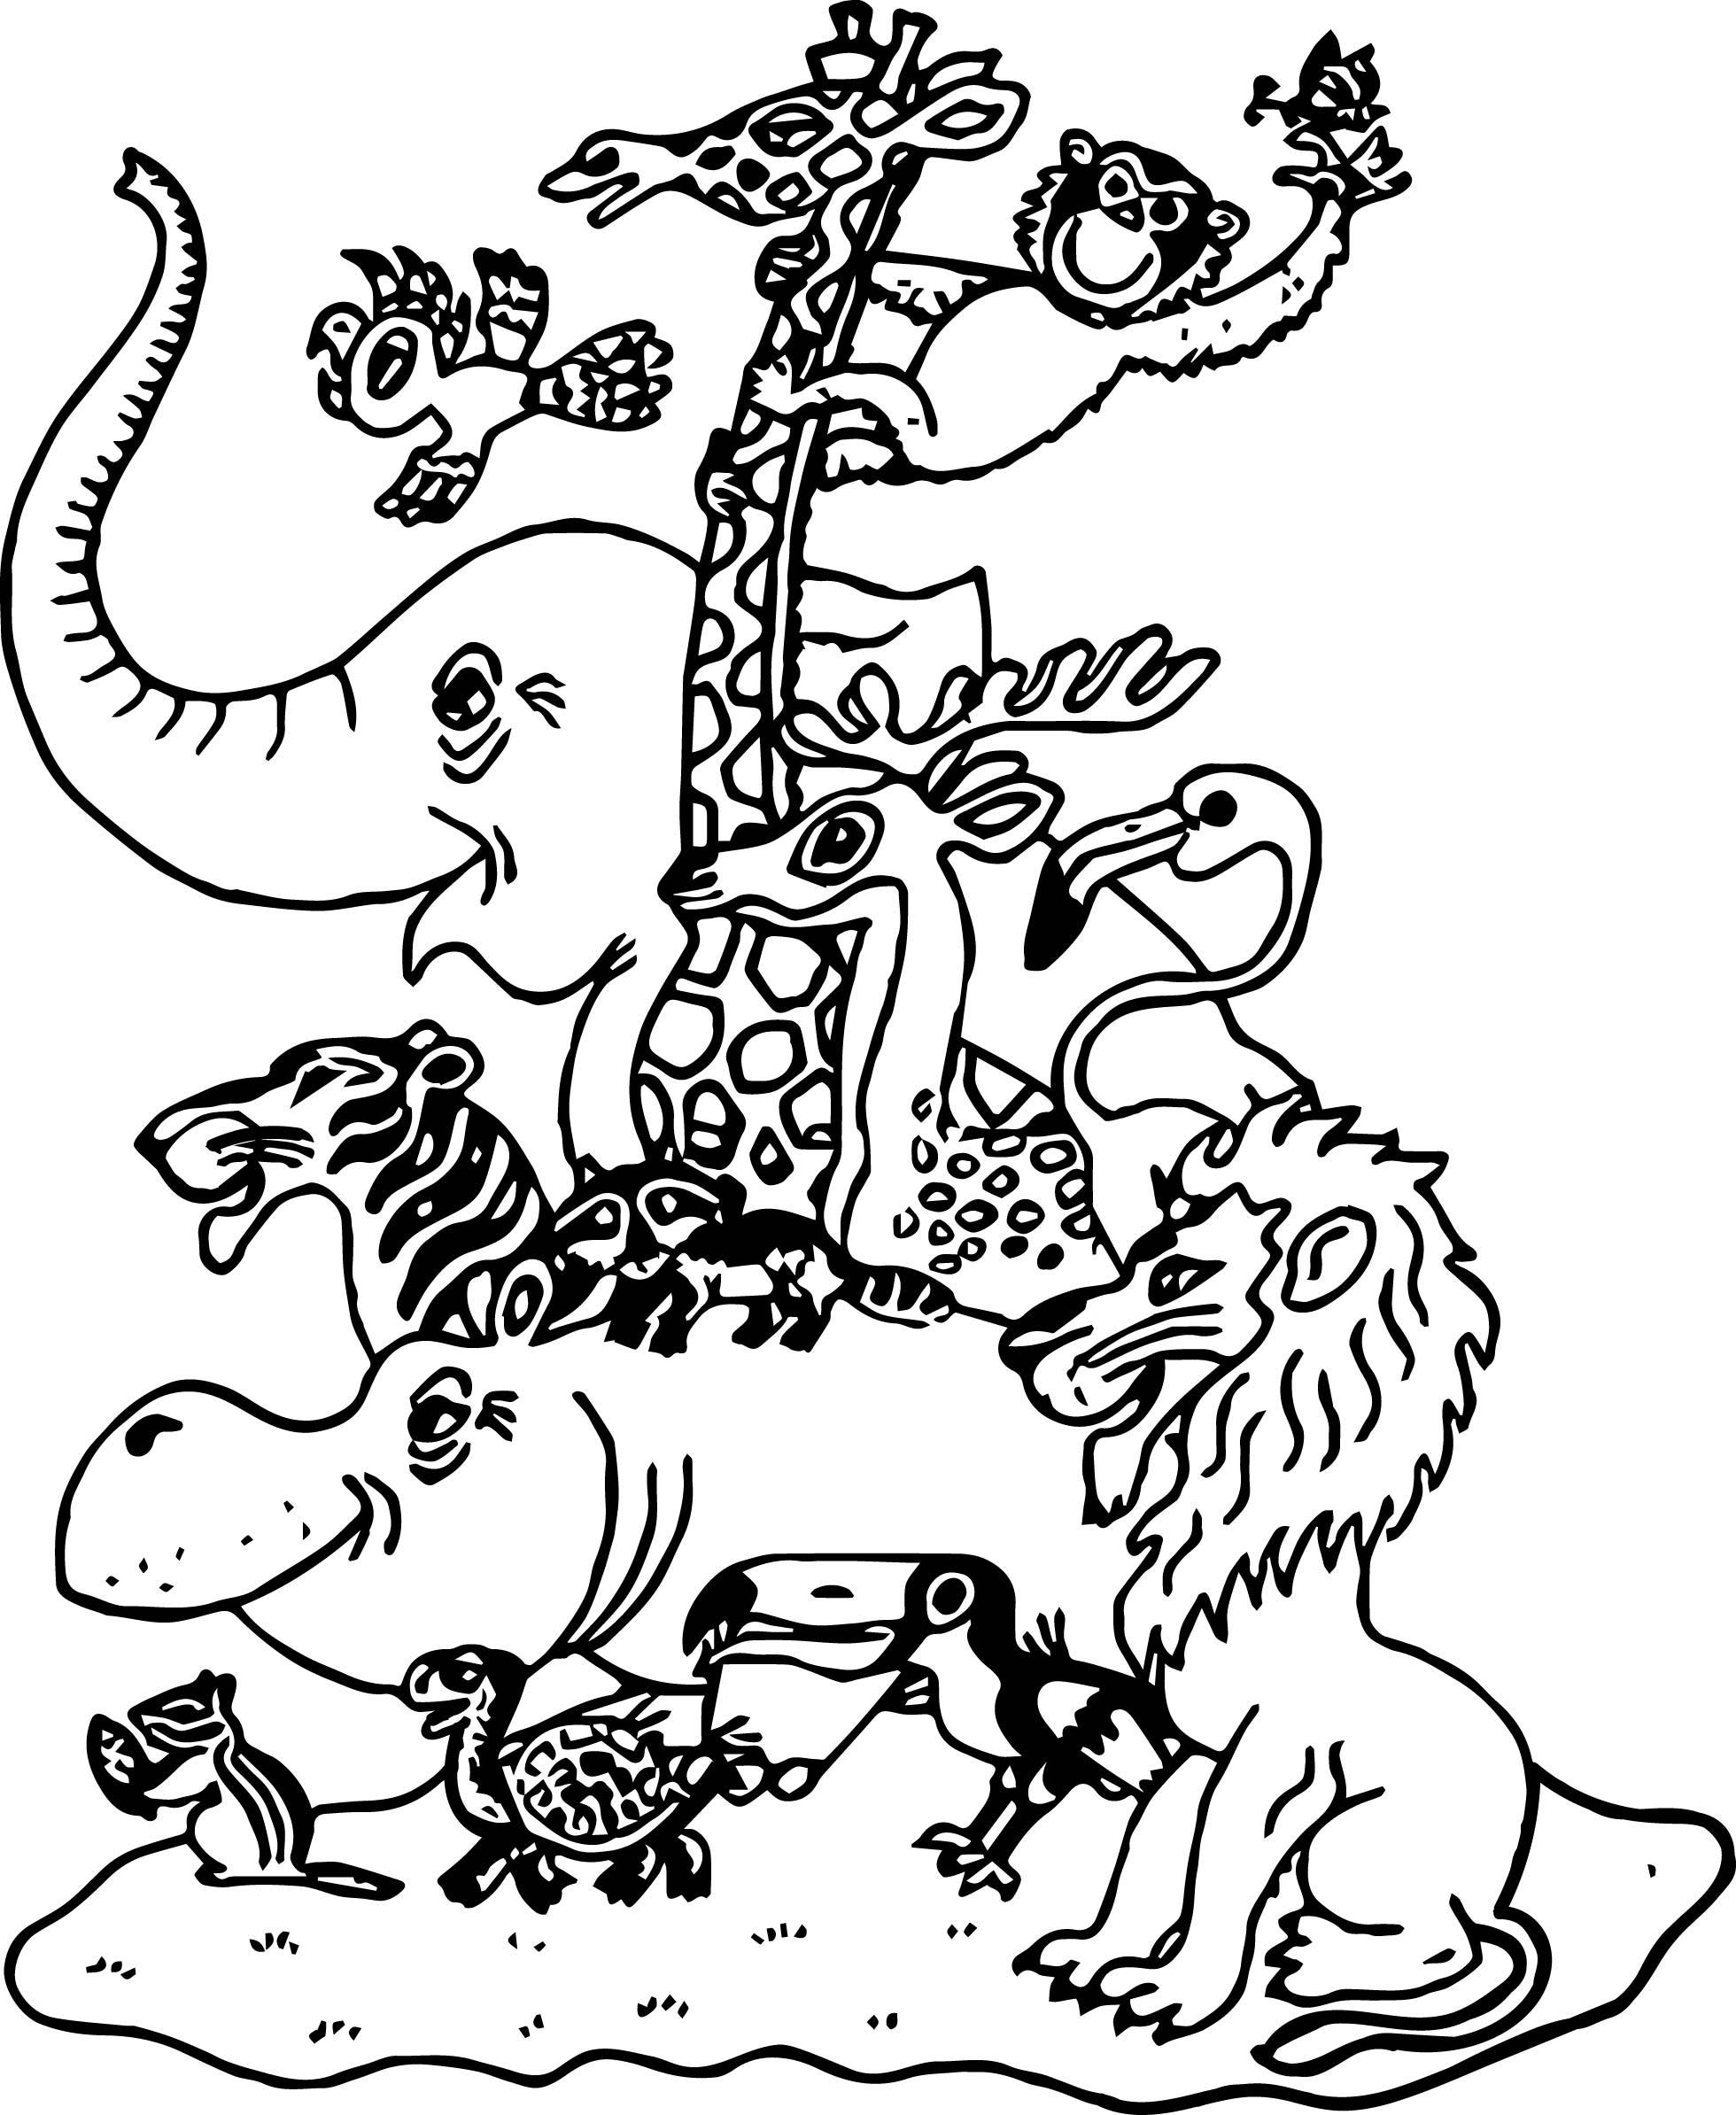 1960x2388 Bull Moose Coloring Page To Print